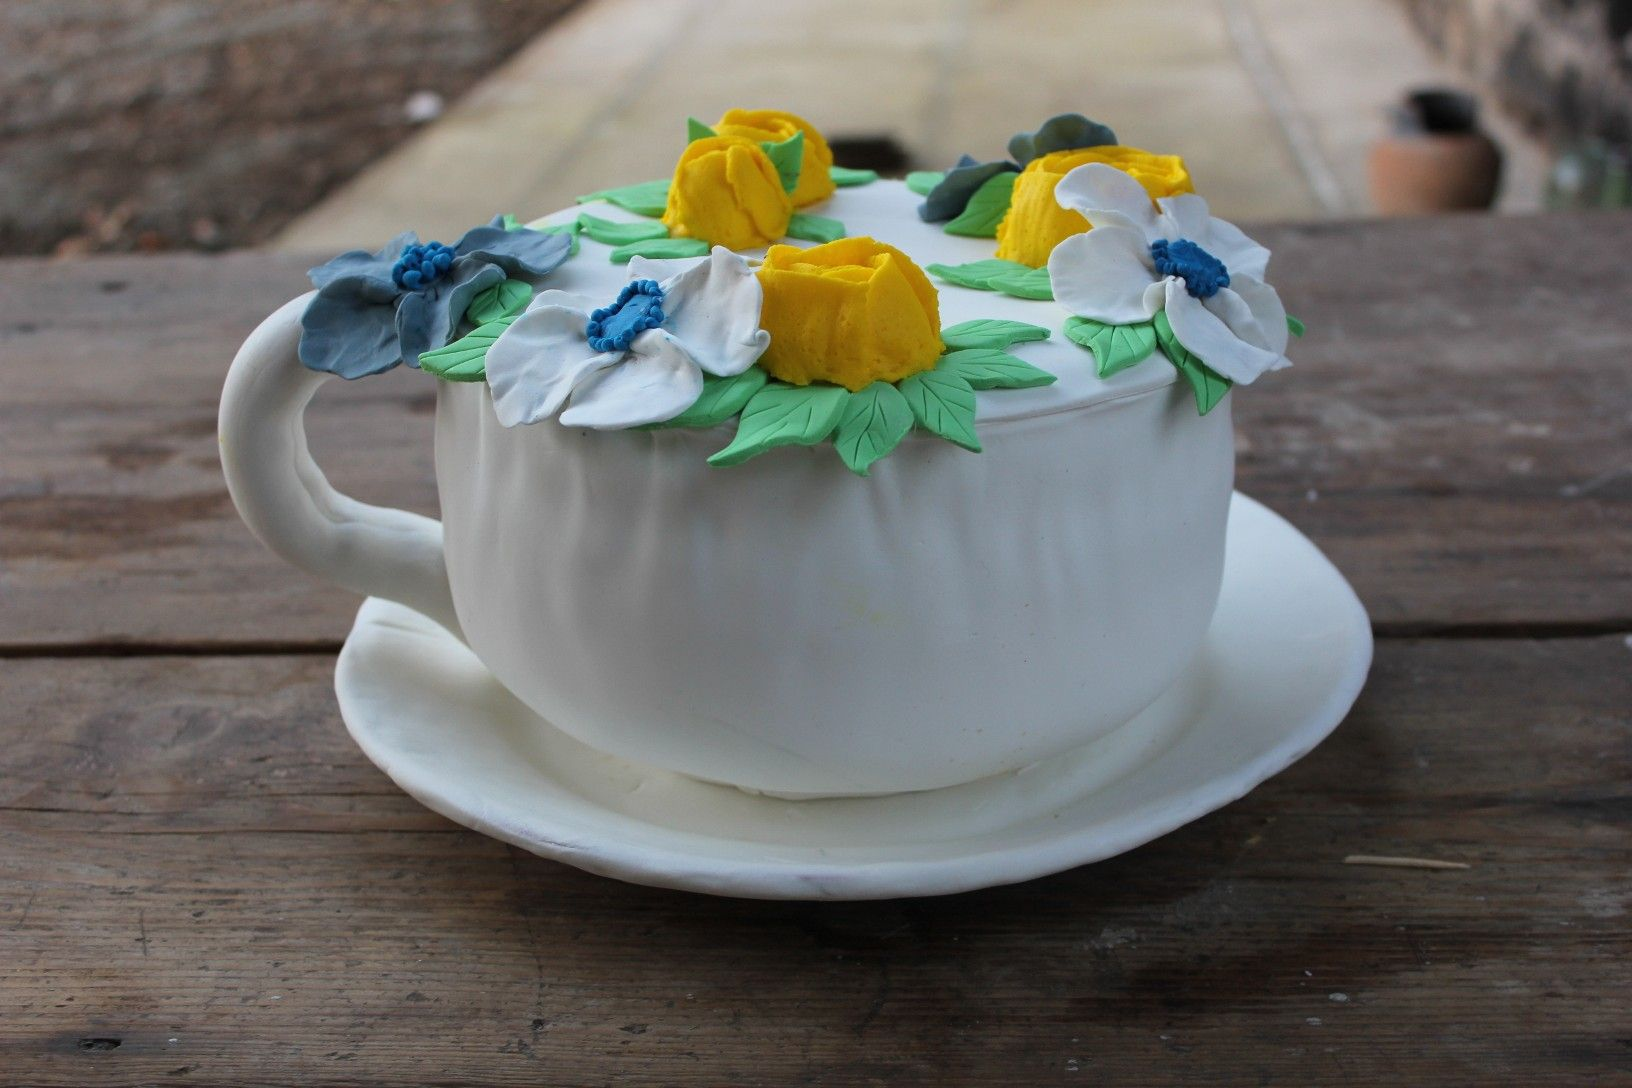 Cake Cup filled with flowers